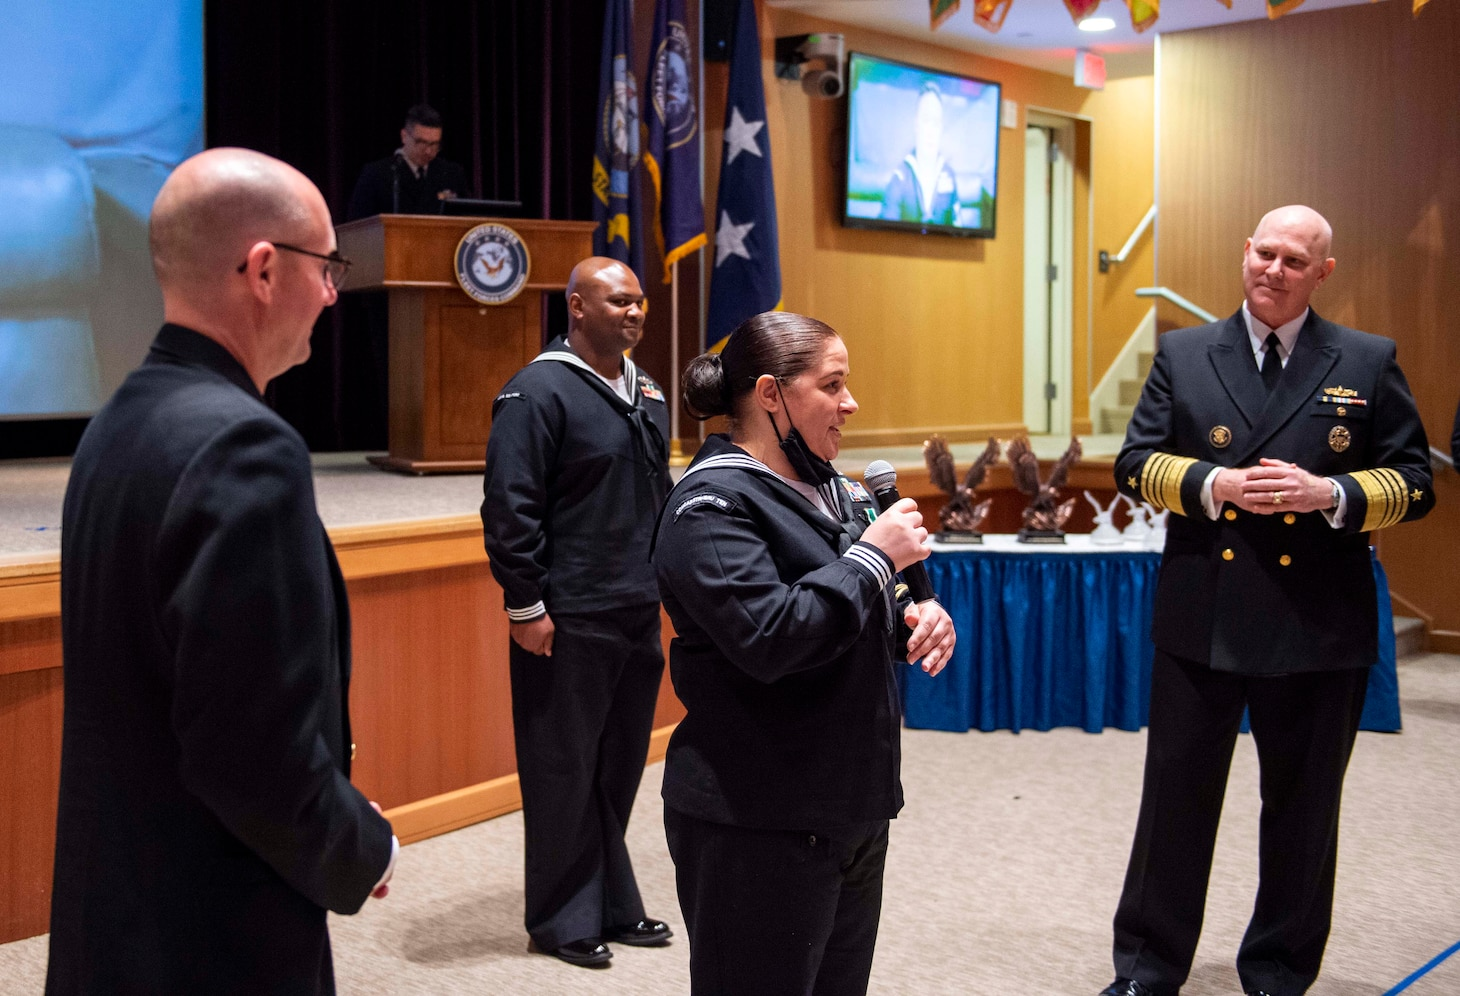 Adm. Christopher W. Grady, commander, U.S. Fleet Forces Command (USFFC), right, and USFFC Fleet Master Chief Rick O�Rawe, left, listen to USFFC 2020 Sea Sailor of the Year (SOY) Personnel Specialist 1st Class Felicia Oxendine, Commander, Carrier Strike Group Ten, center, speak during a ceremony at the Joint Forces Staff College, May 27, 2021.